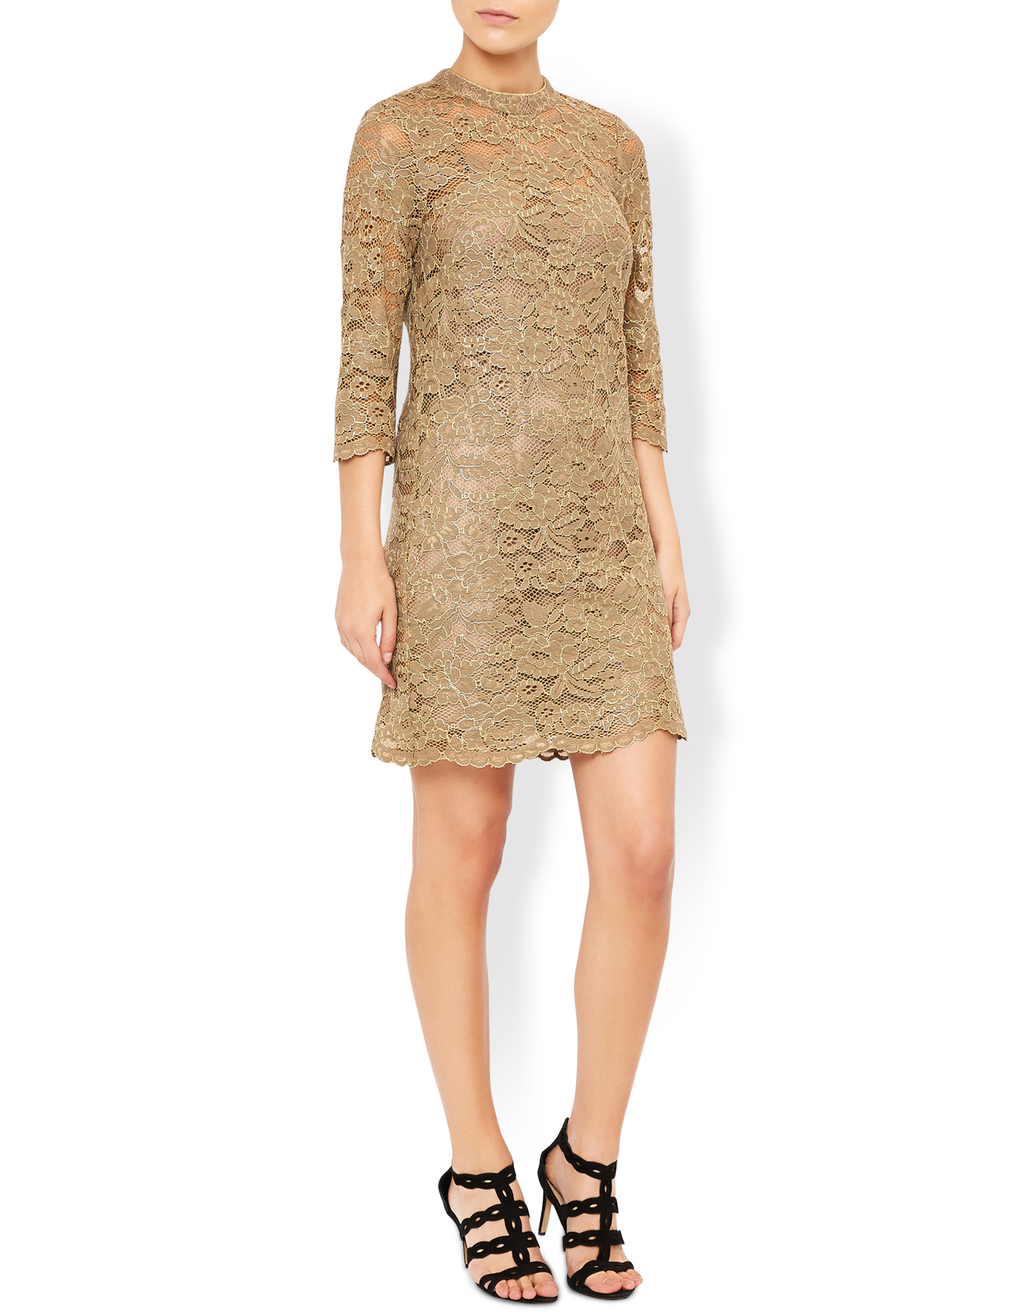 Caspia Lace Dress - fit: tight; neckline: high neck; style: bodycon; predominant colour: gold; occasions: evening; length: just above the knee; fibres: acrylic - mix; sleeve length: 3/4 length; sleeve style: standard; texture group: lace; pattern type: fabric; pattern size: standard; pattern: patterned/print; embellishment: lace; season: s/s 2016; wardrobe: event